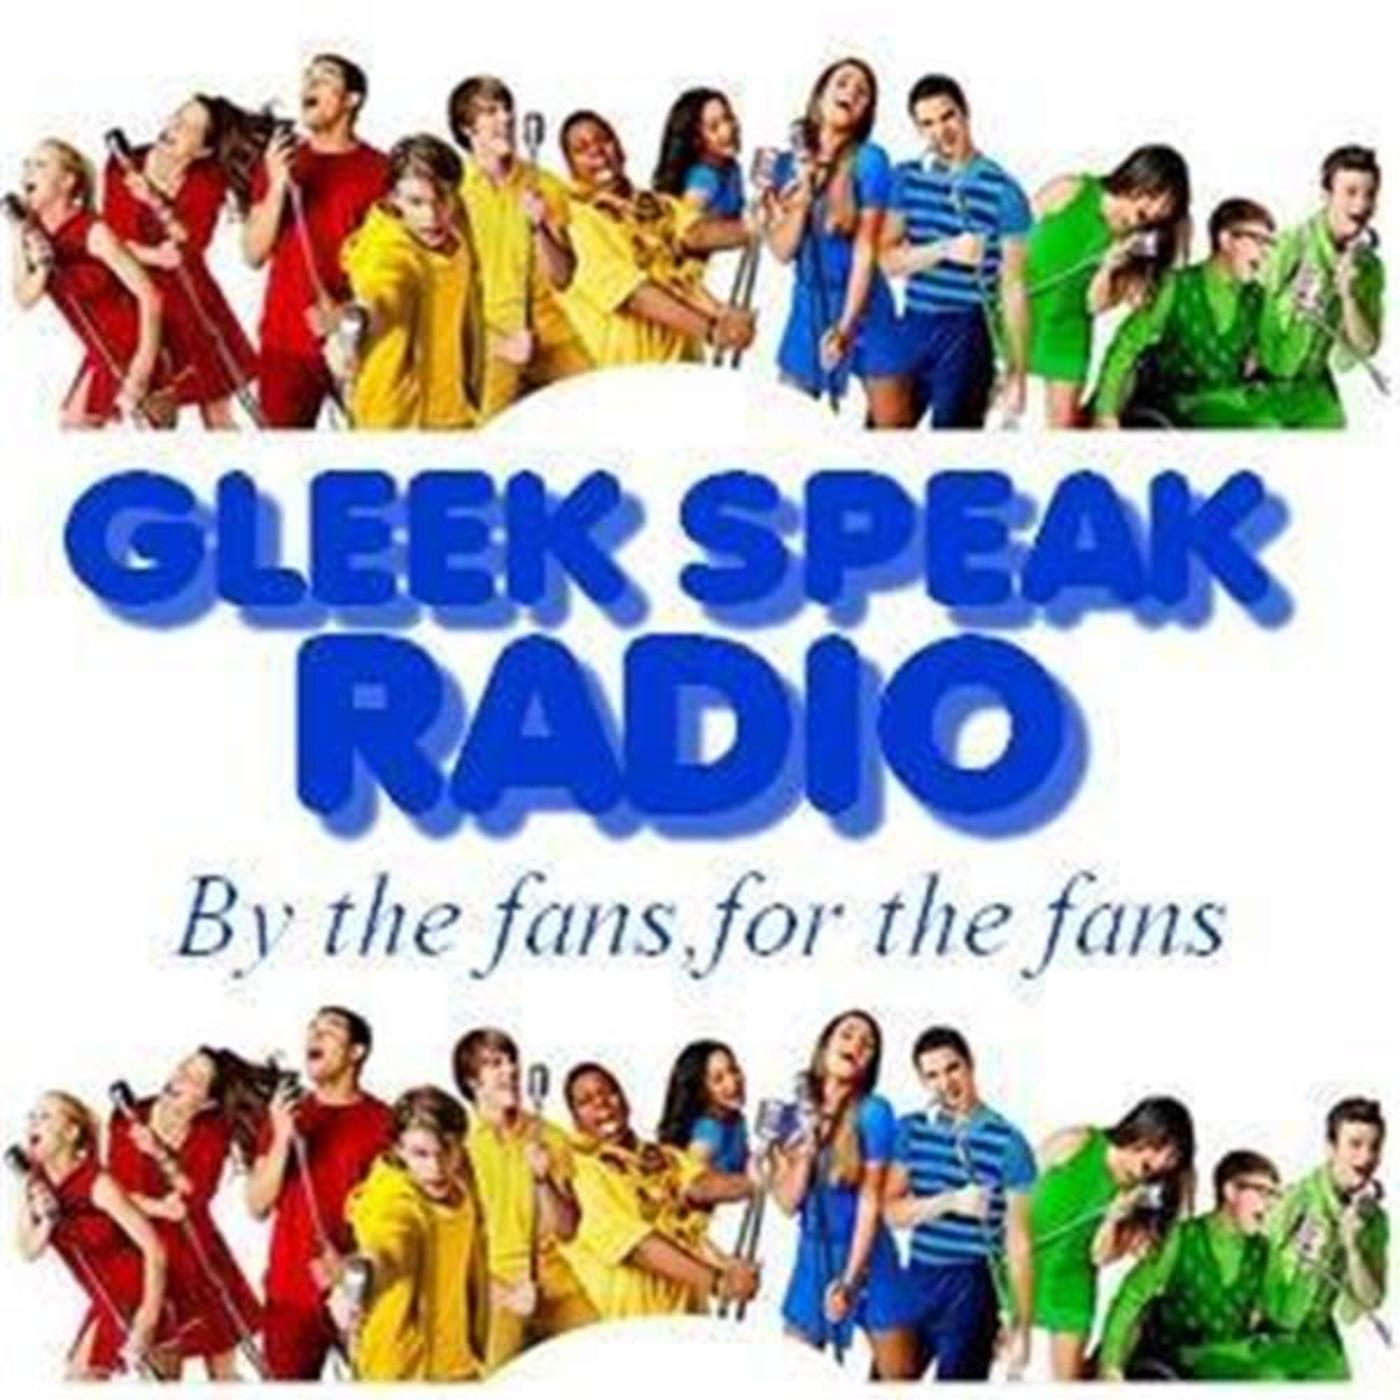 Gleek Speak Radio aka Glee Radio